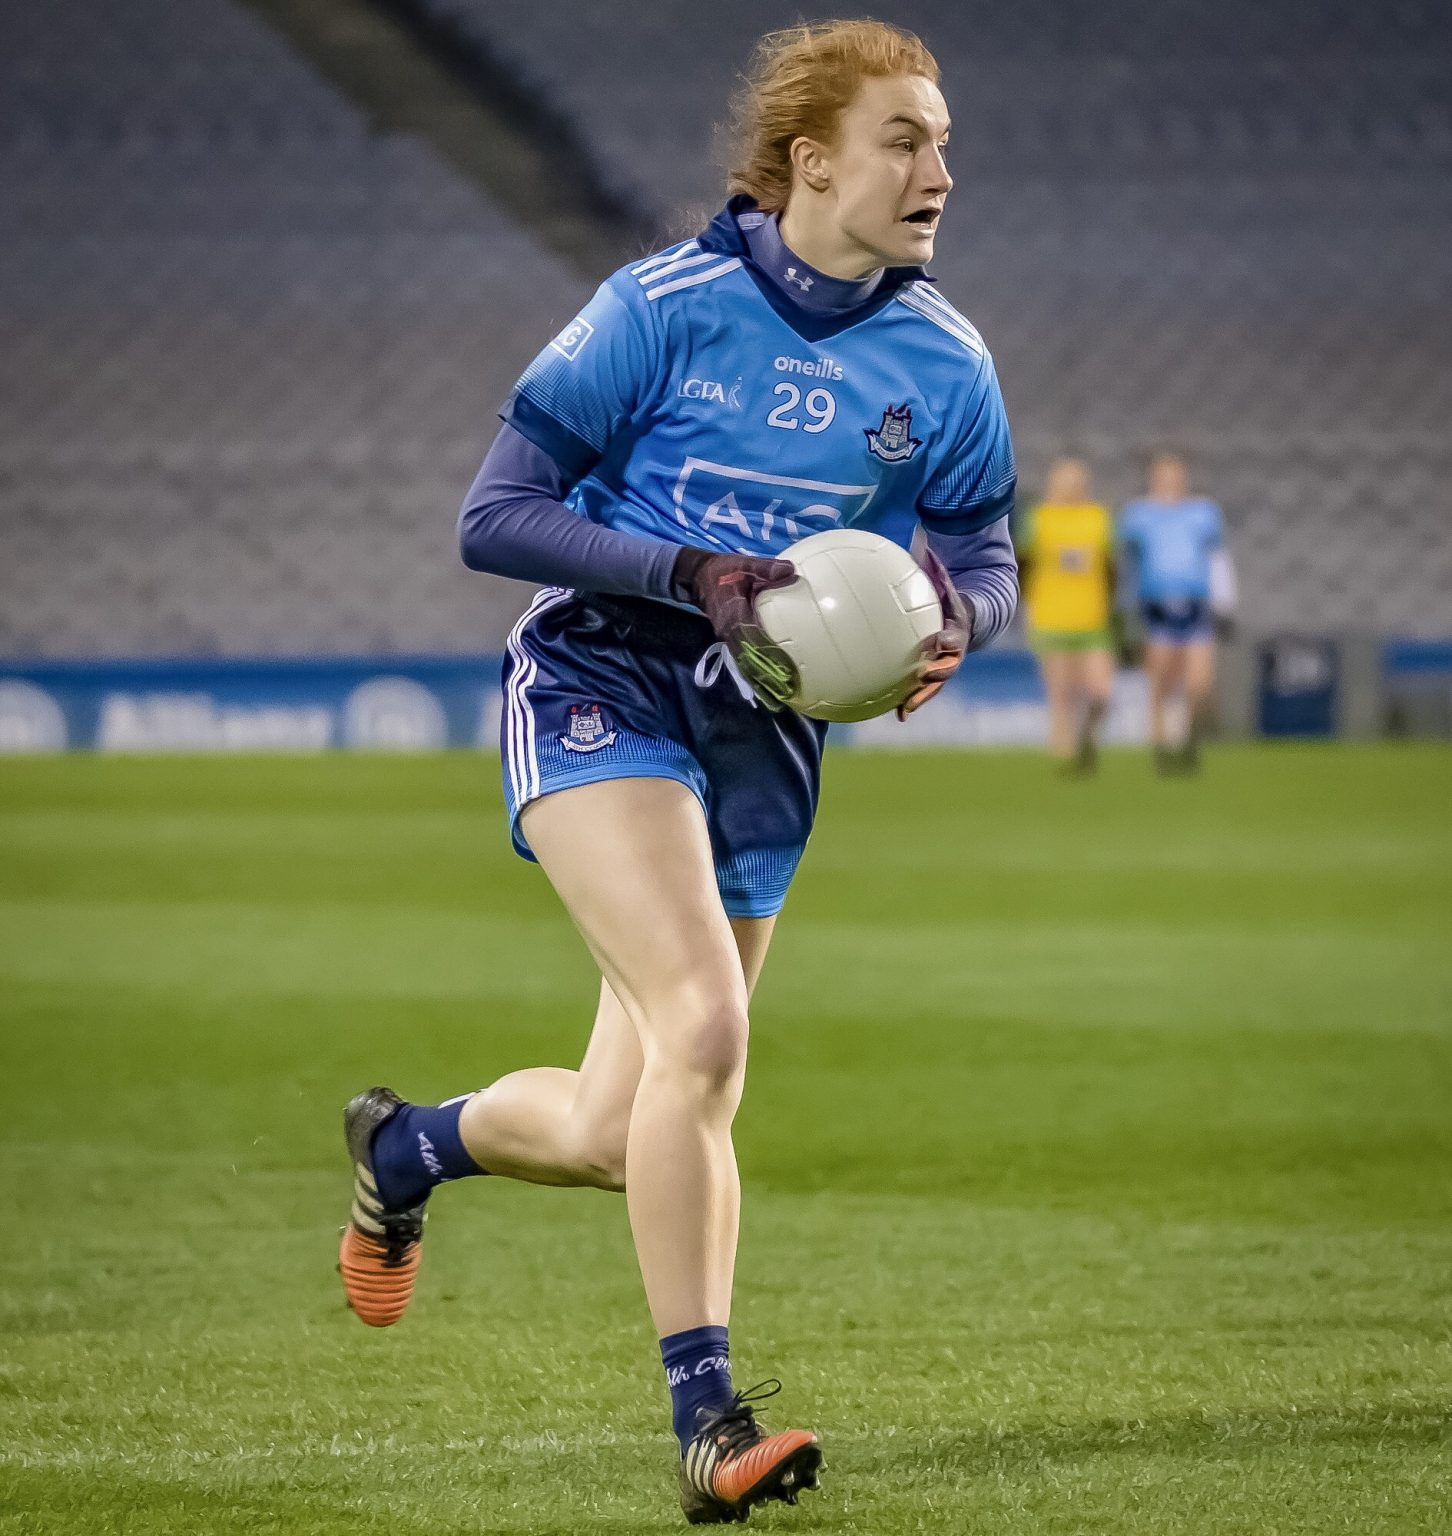 Dublin Ladies footballer Lauren Magee in a sky blue jersey and navy shorts is included to start for the Dublin Senior Ladies team against Tipperary